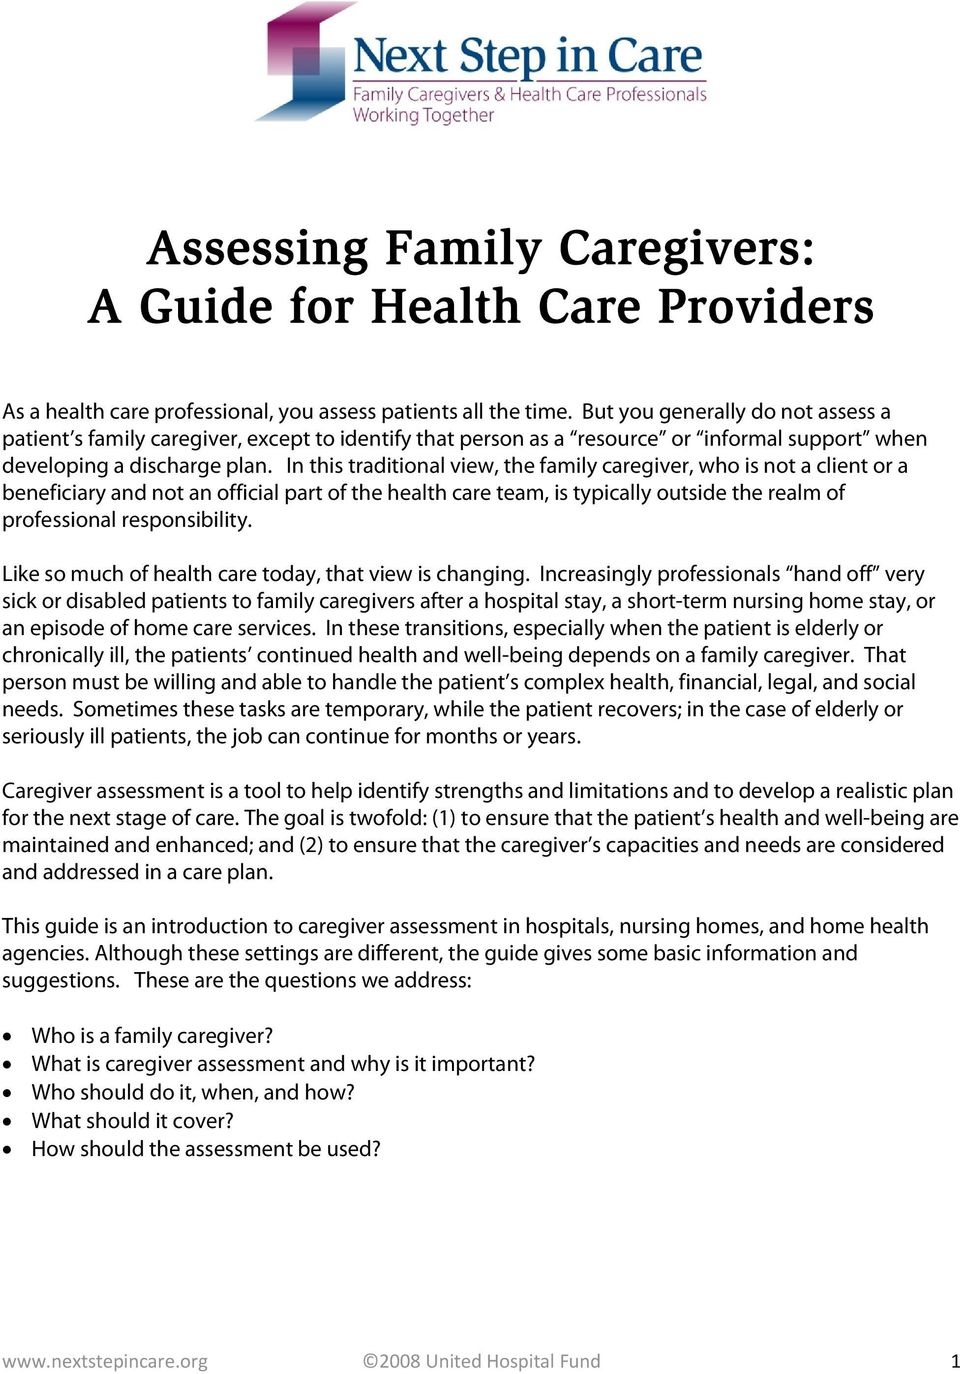 In this traditional view, the family caregiver, who is not a client or a beneficiary and not an official part of the health care team, is typically outside the realm of professional responsibility.